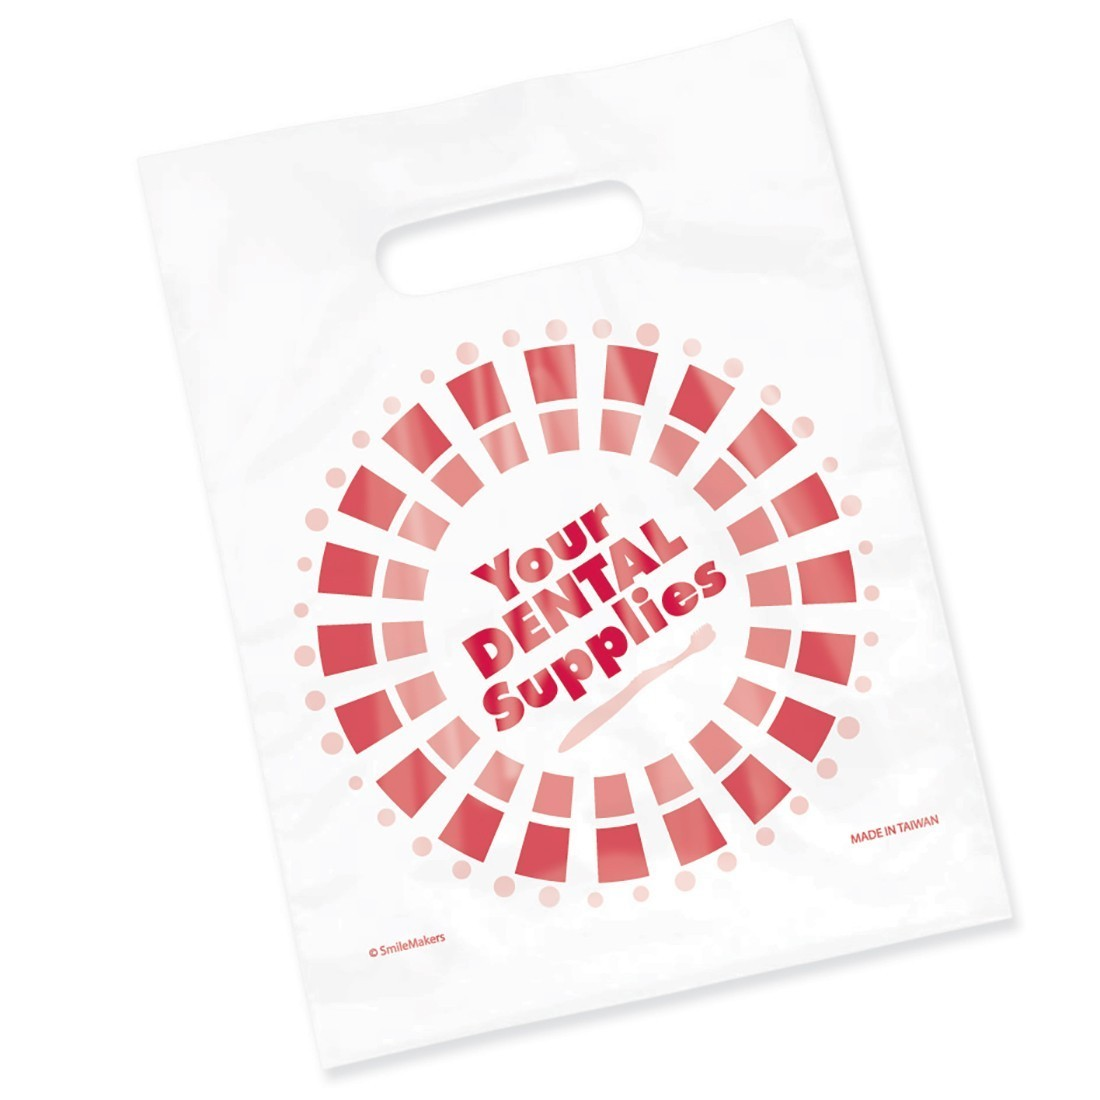 Clear Dental Supplies Circle Bags                  [image]